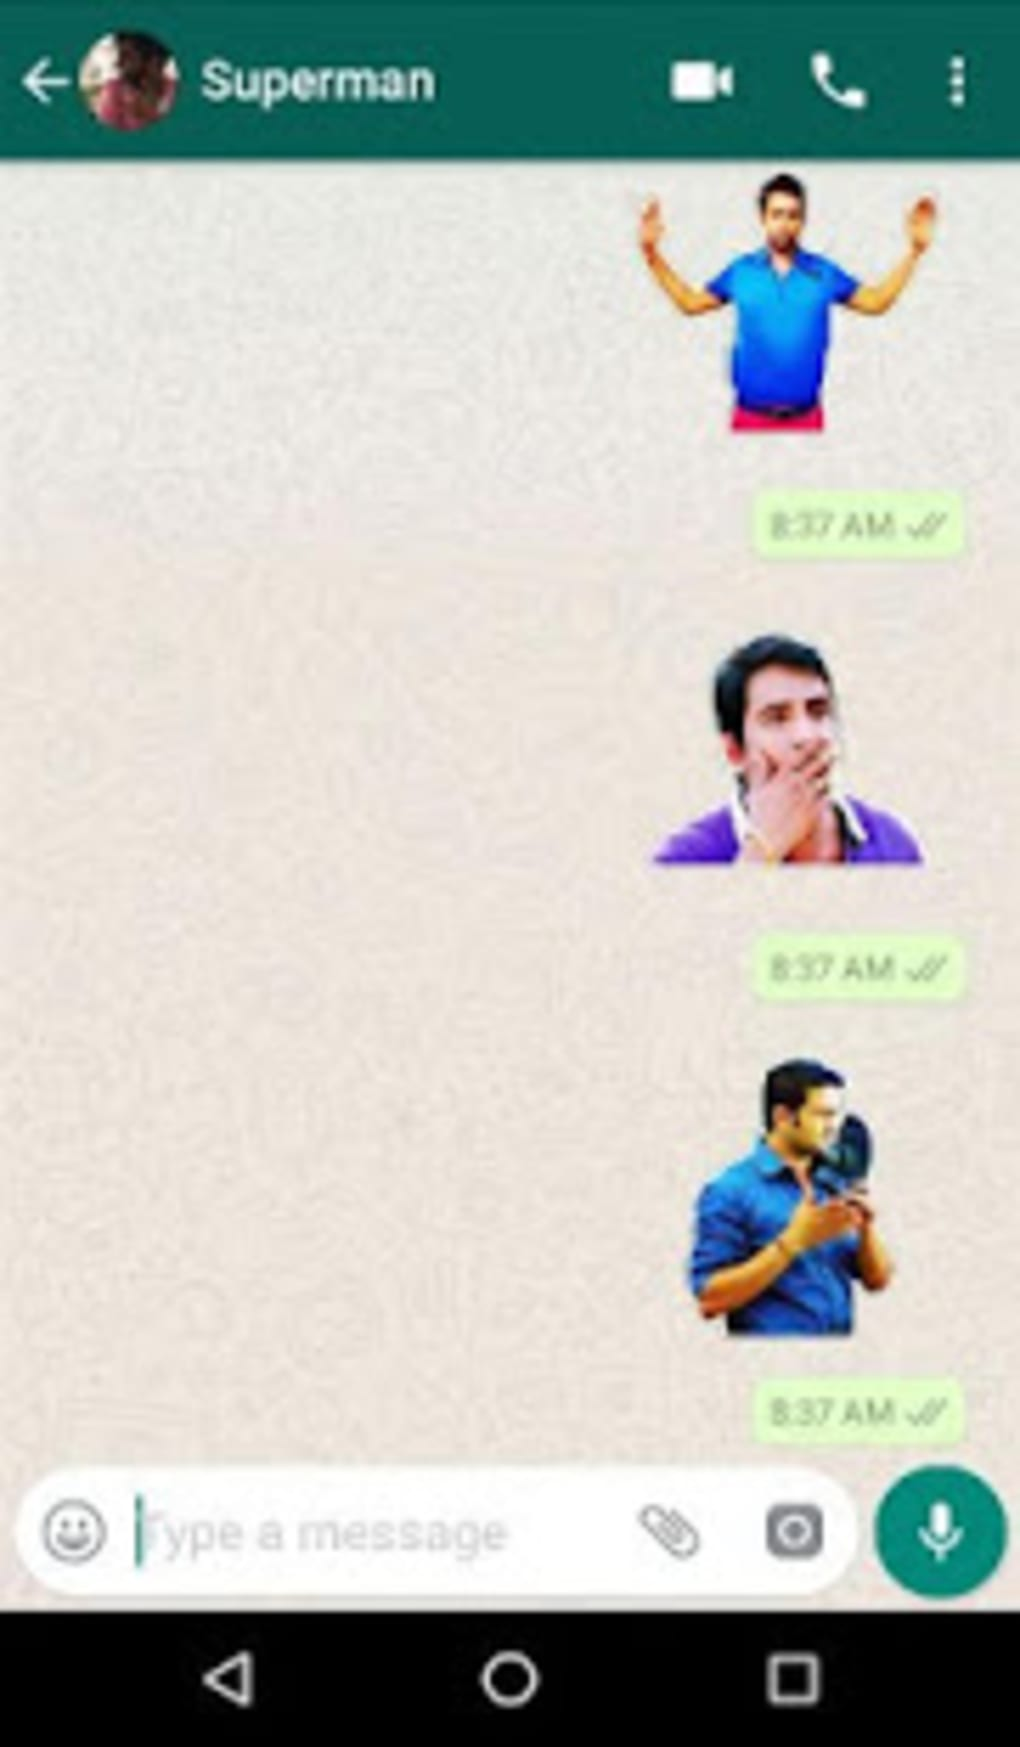 Tamil Stickers for WhatsApp WAStickerApp for Android - Download